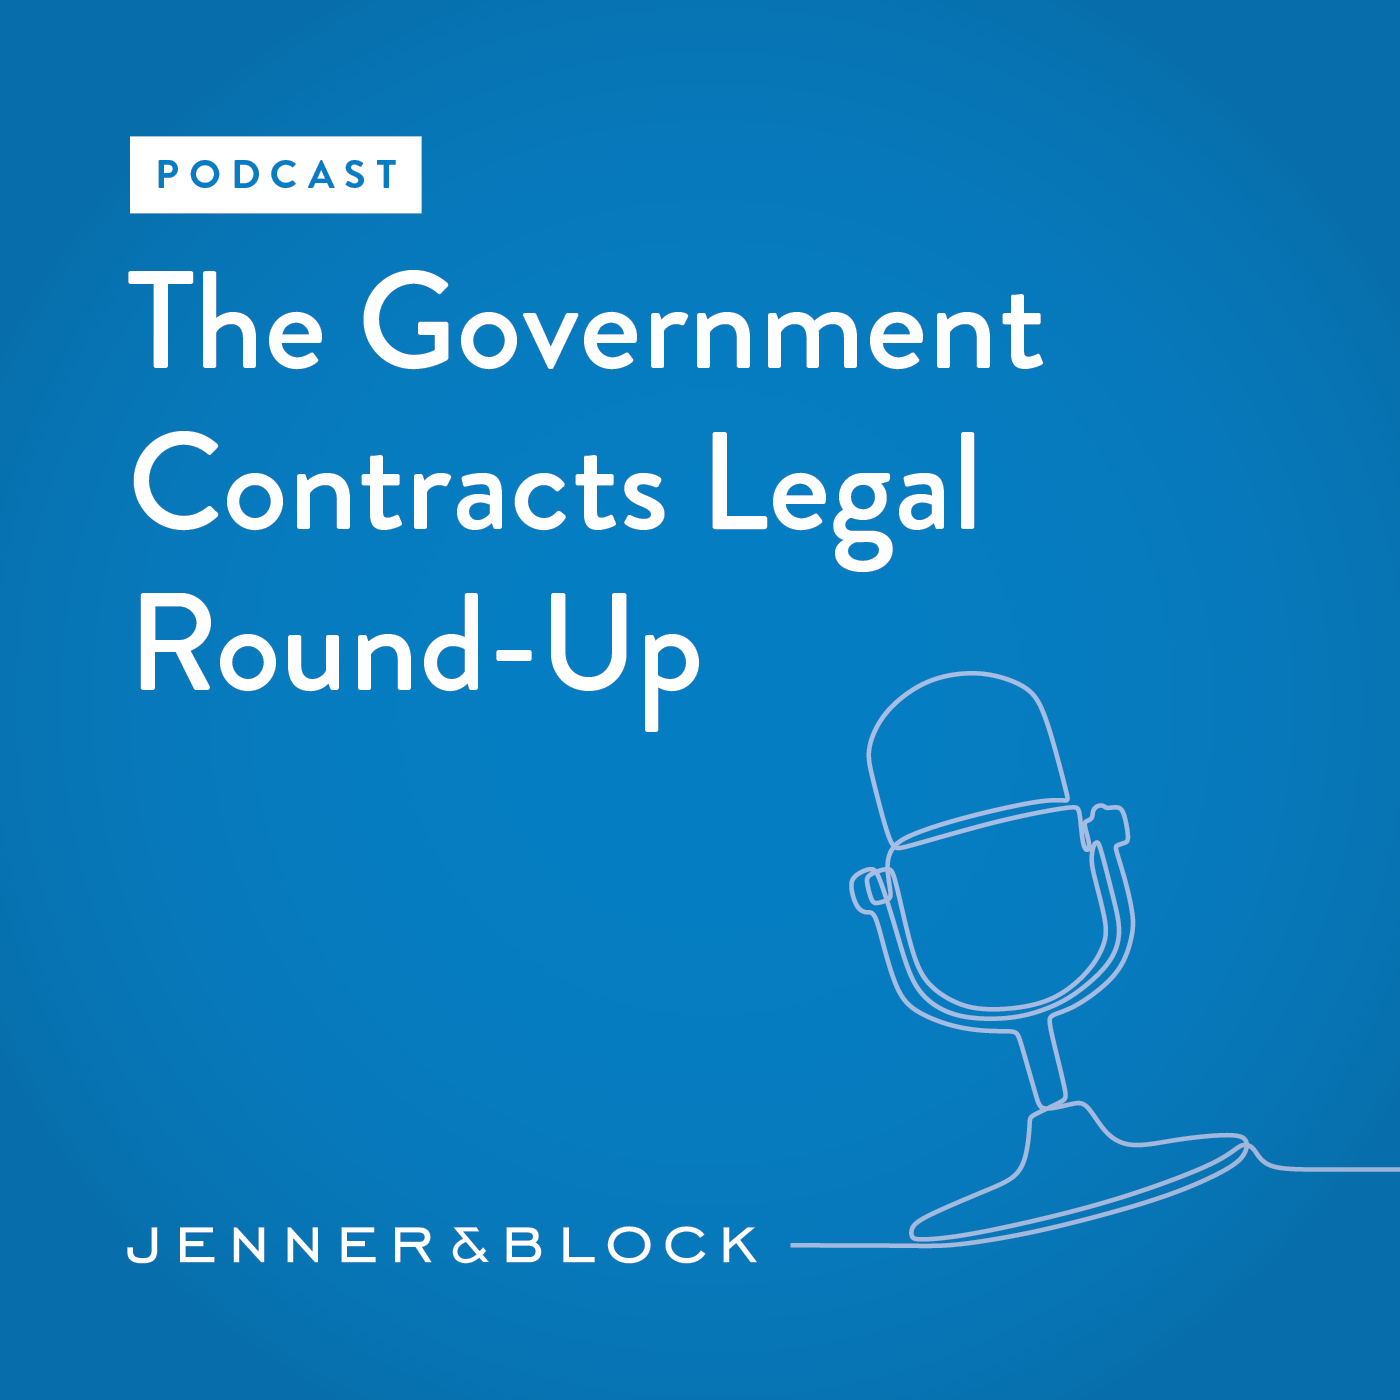 The Government Contracts Legal Round-Up